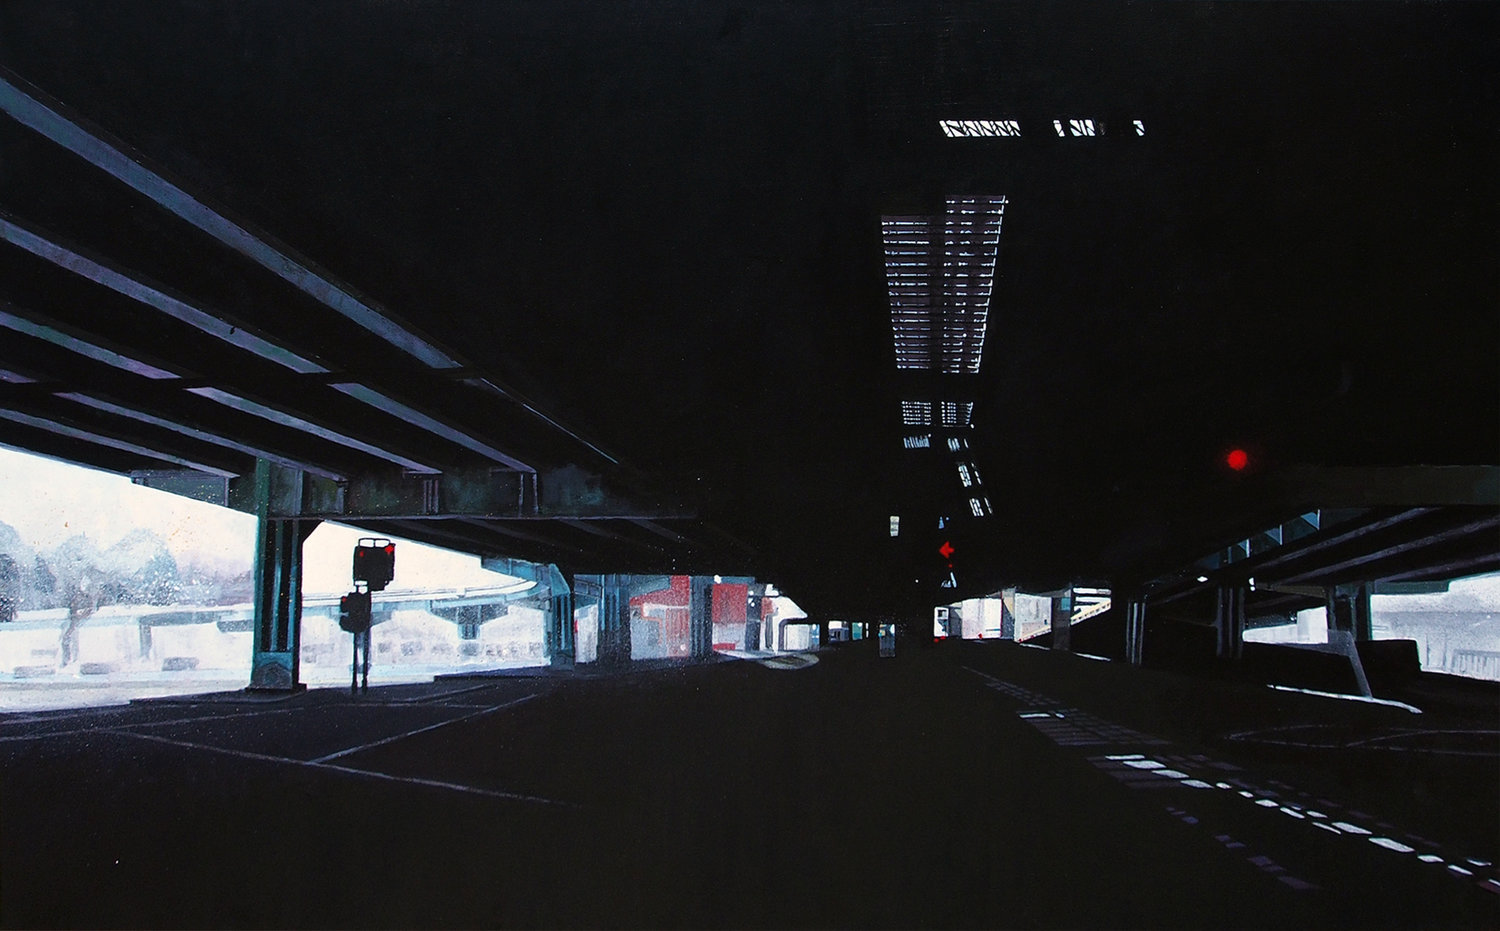 'Overpass', Victoria Dale, Acrylic on canvas, 76 x 122 x 2 cm